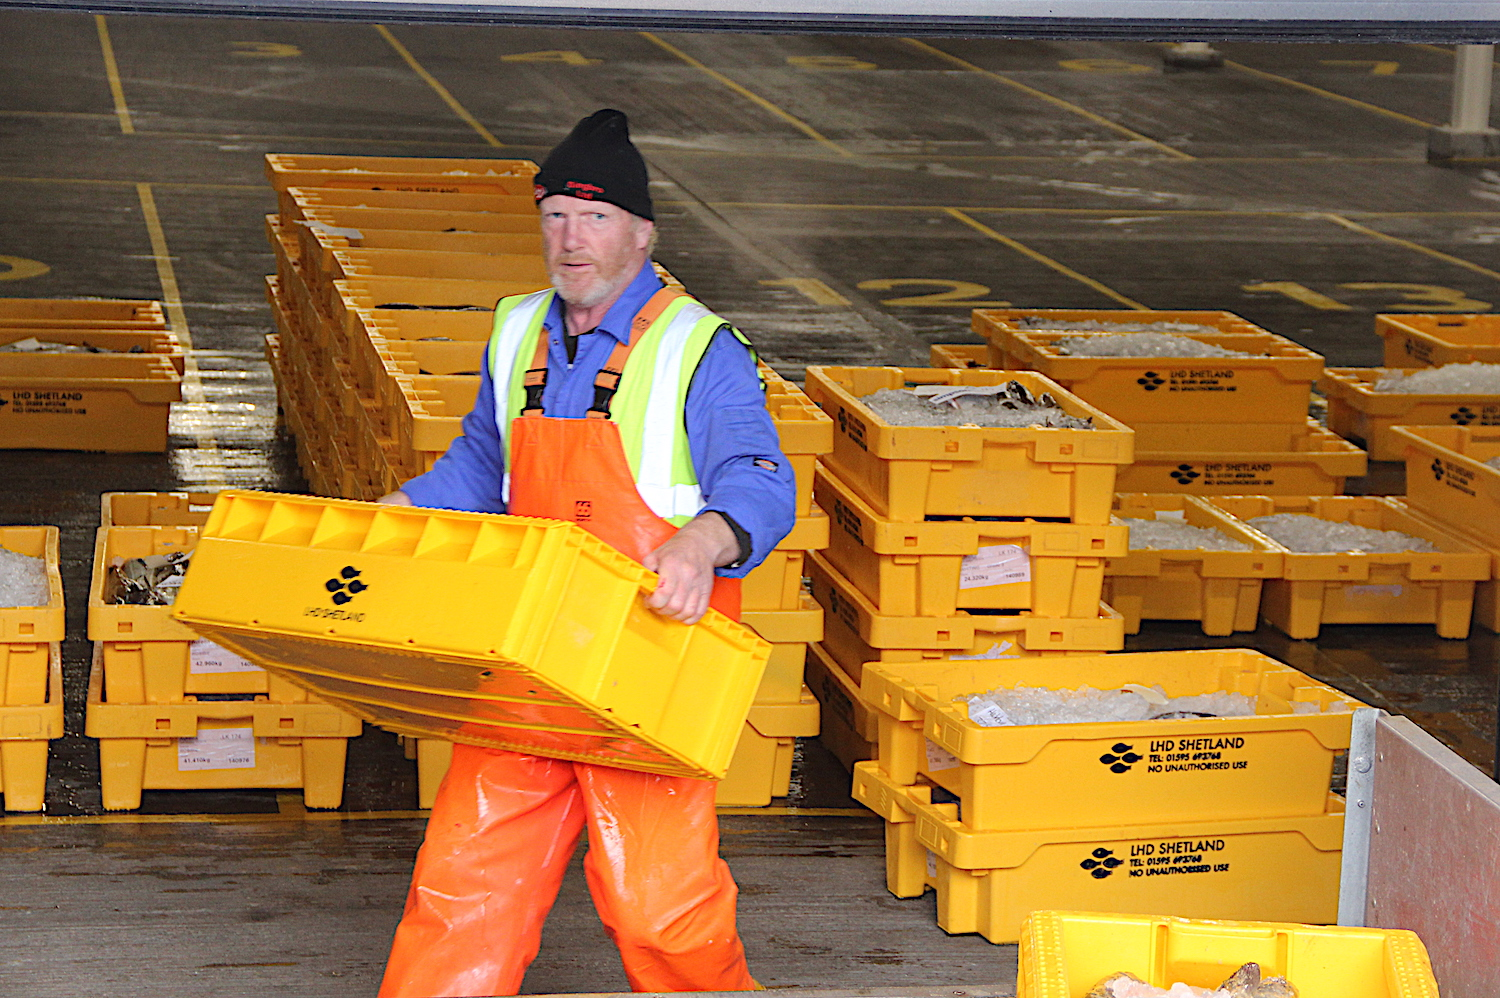 Fish landings at Scalloway continue while new market is